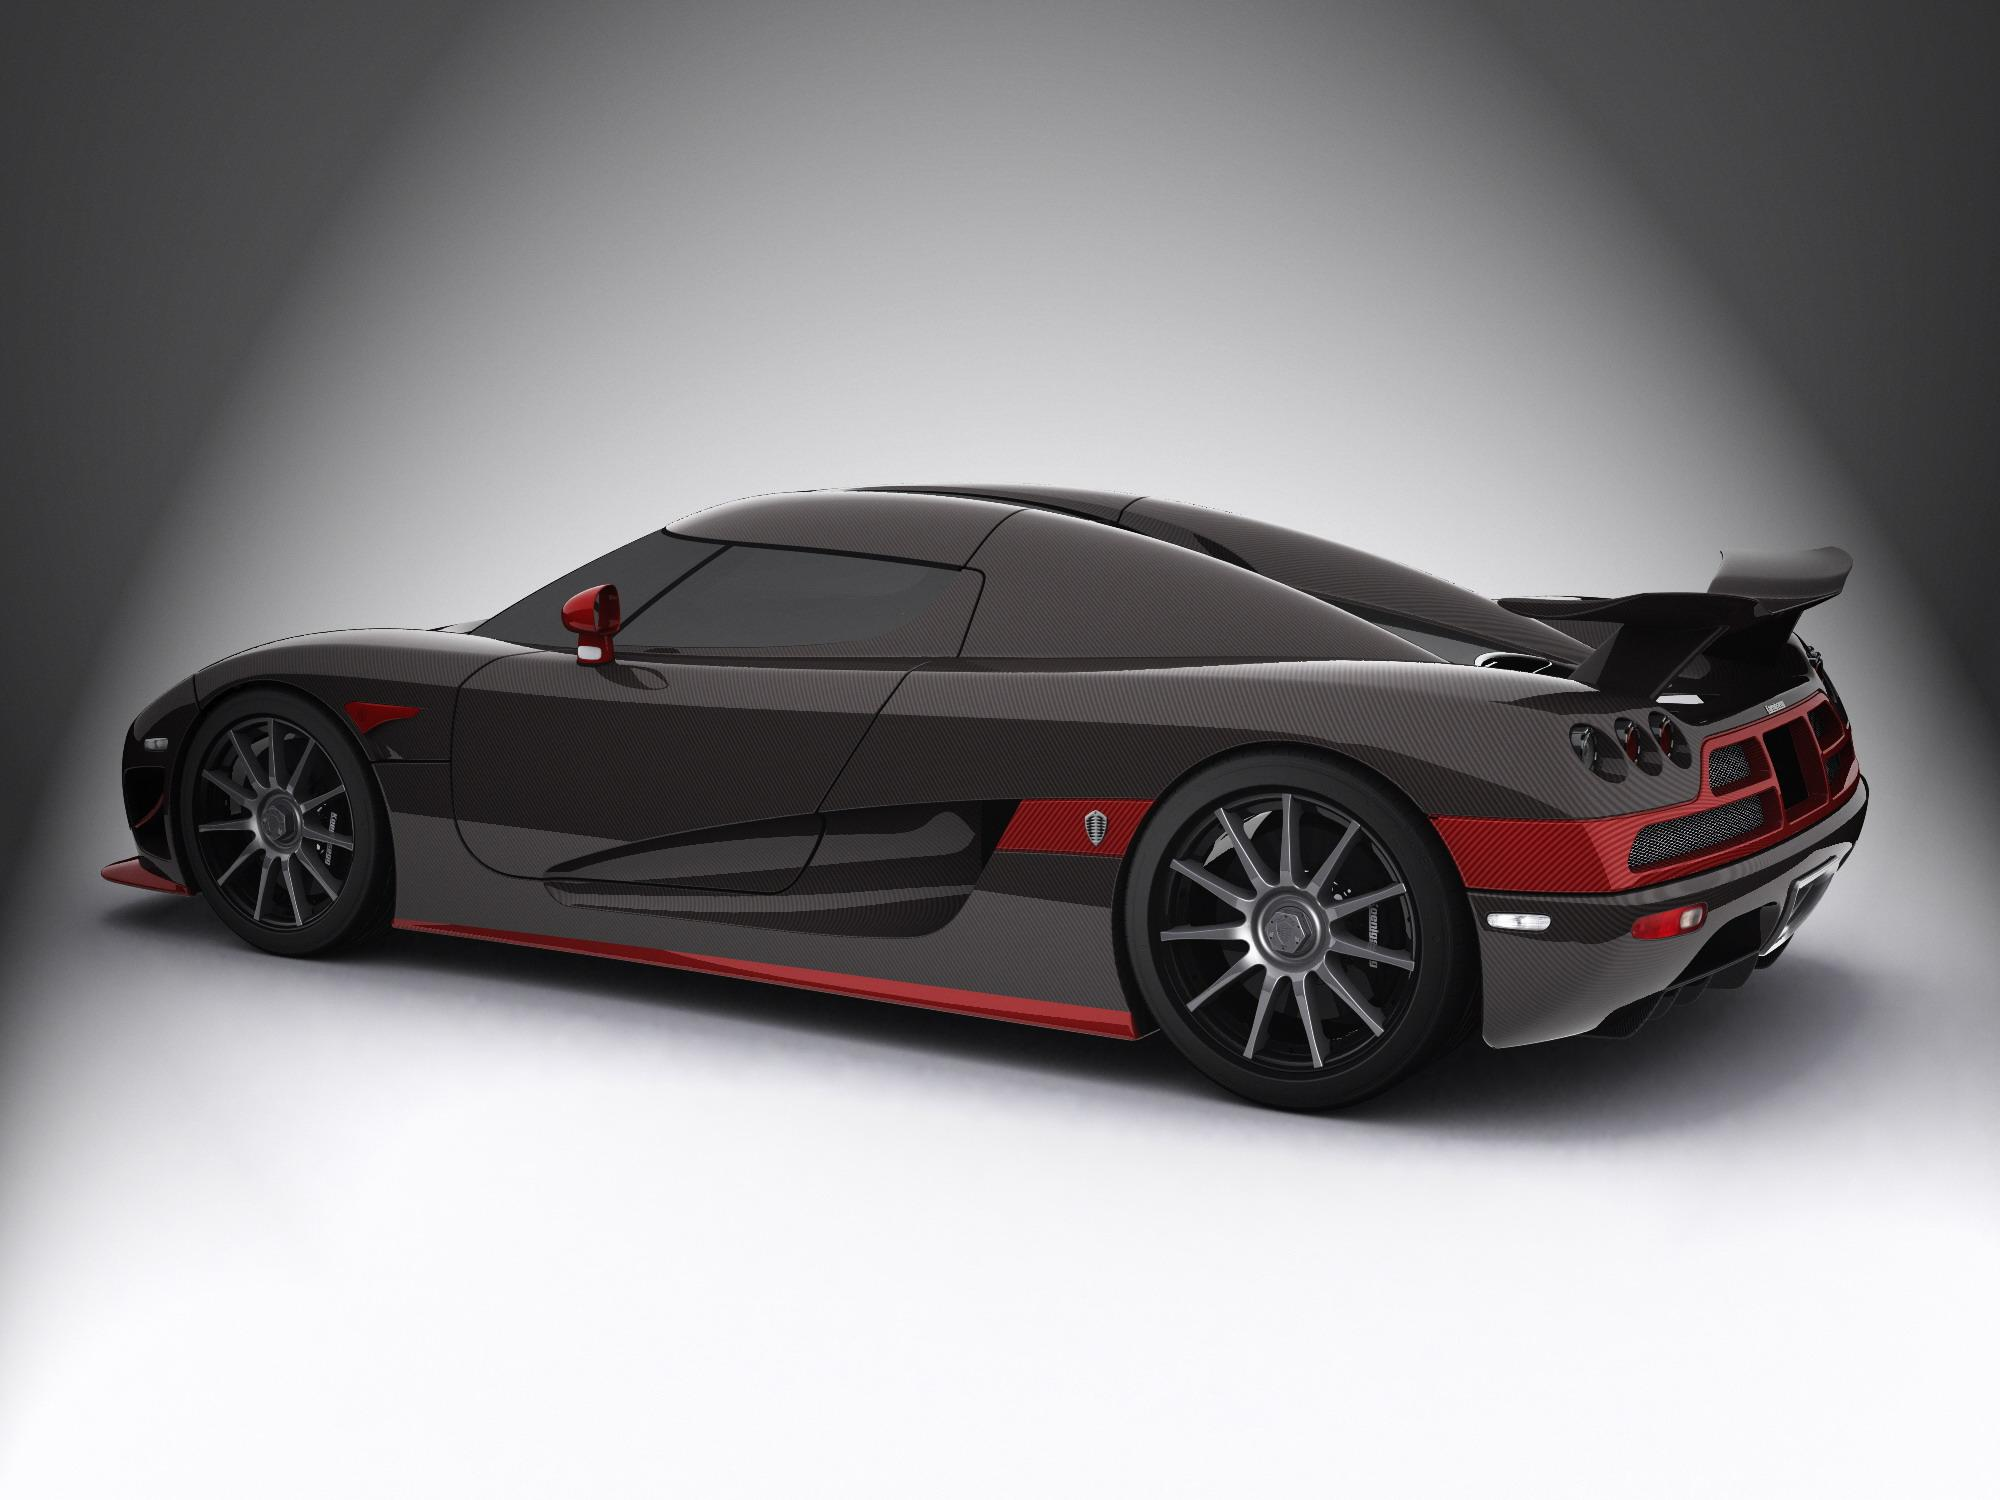 2007 Koenigsegg CCX And CCXR Limited Editions Review - Top Speed